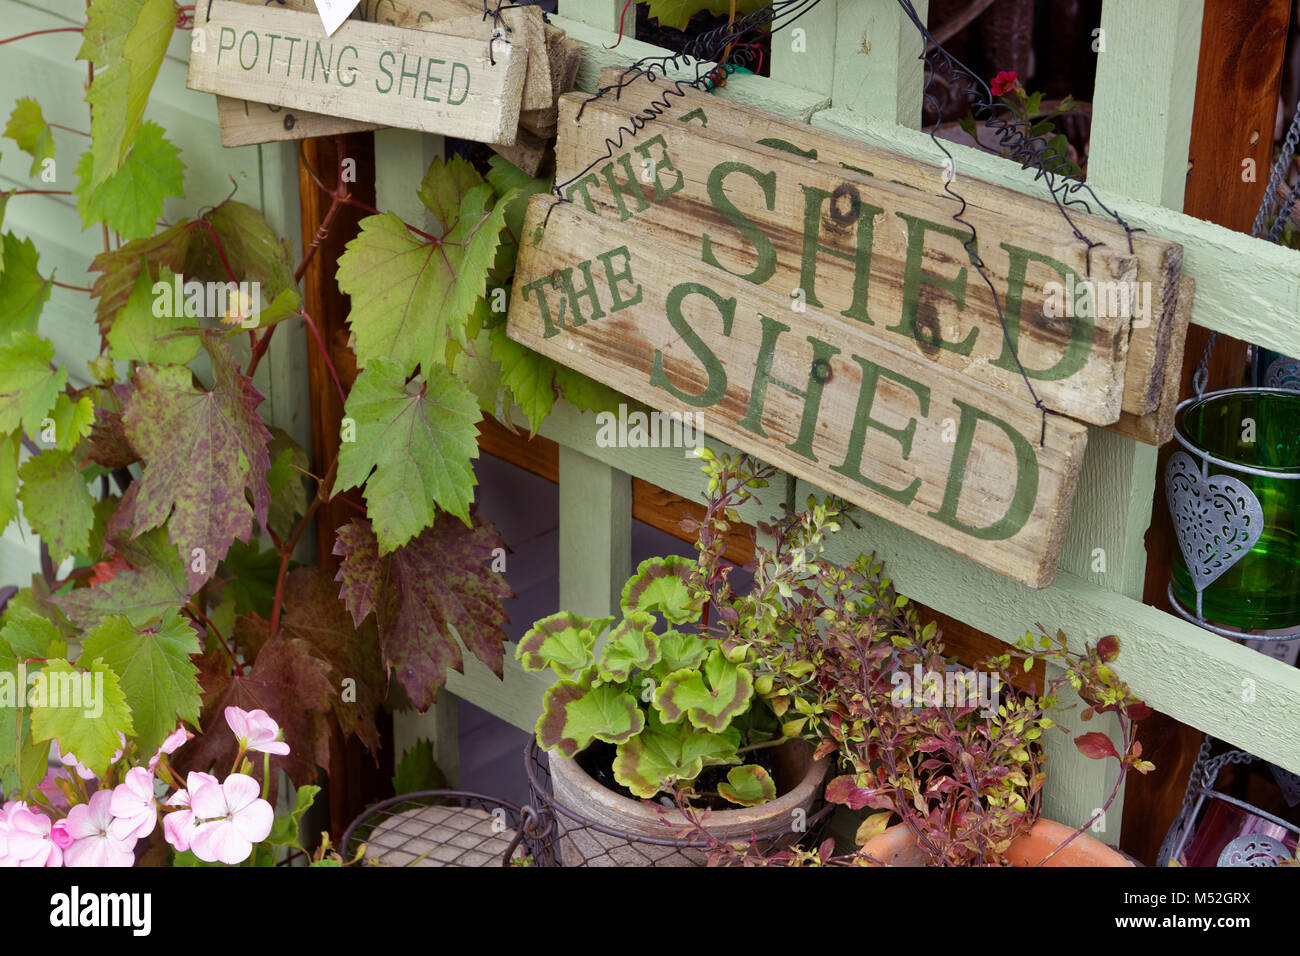 Genial Garden Shed Signs And Flower Pots Stock Photo: 175234078   Alamy